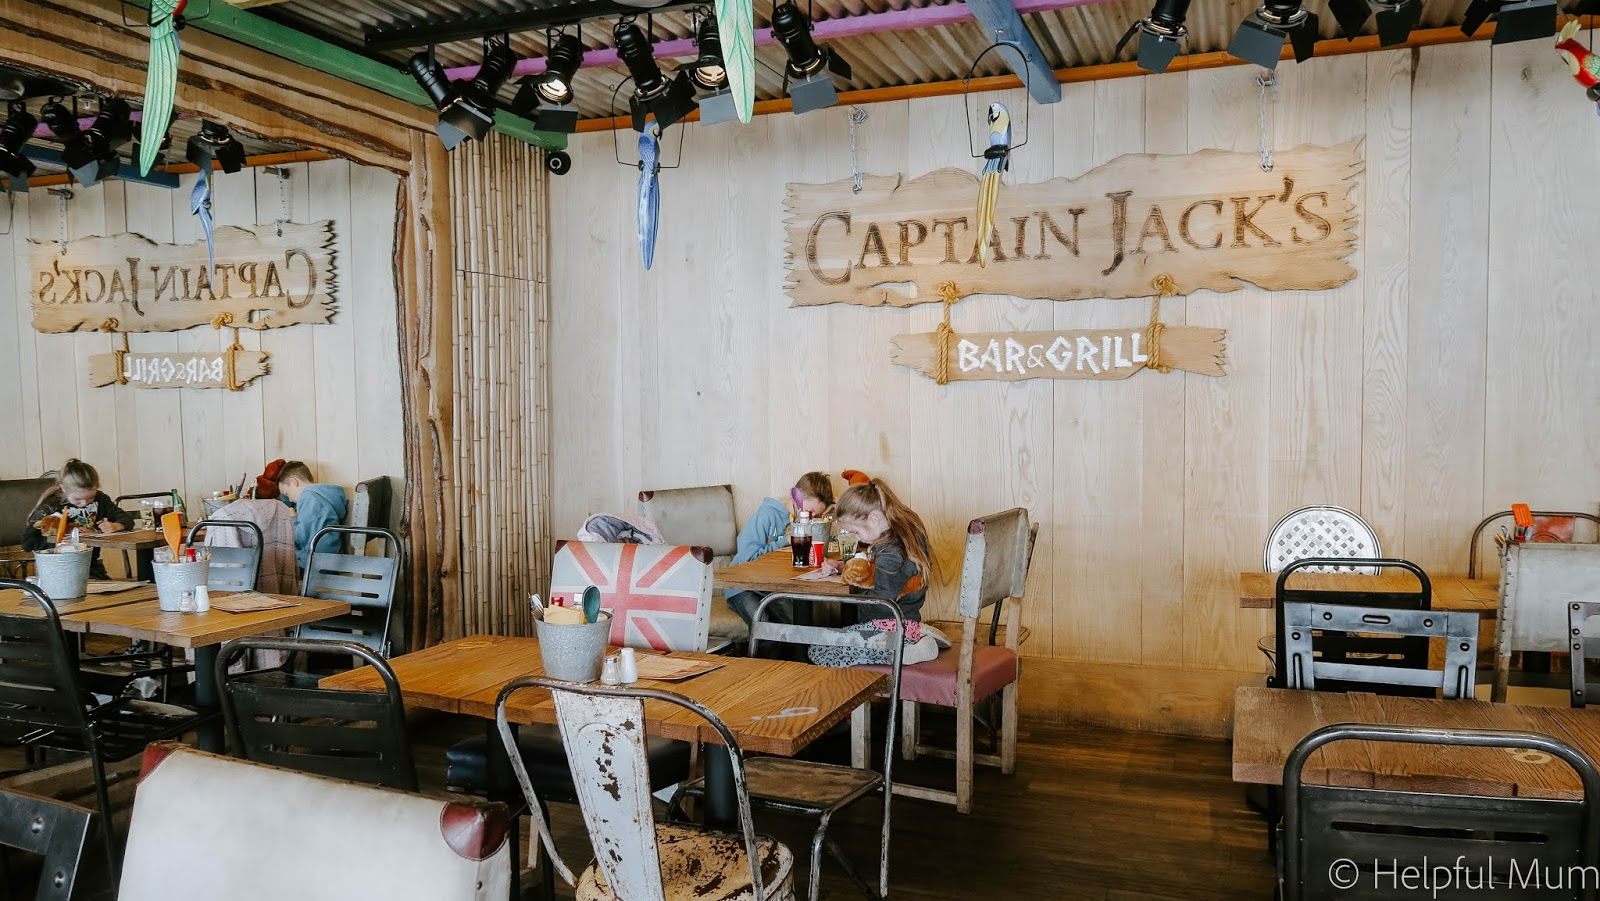 Captain Jack's bar and grill